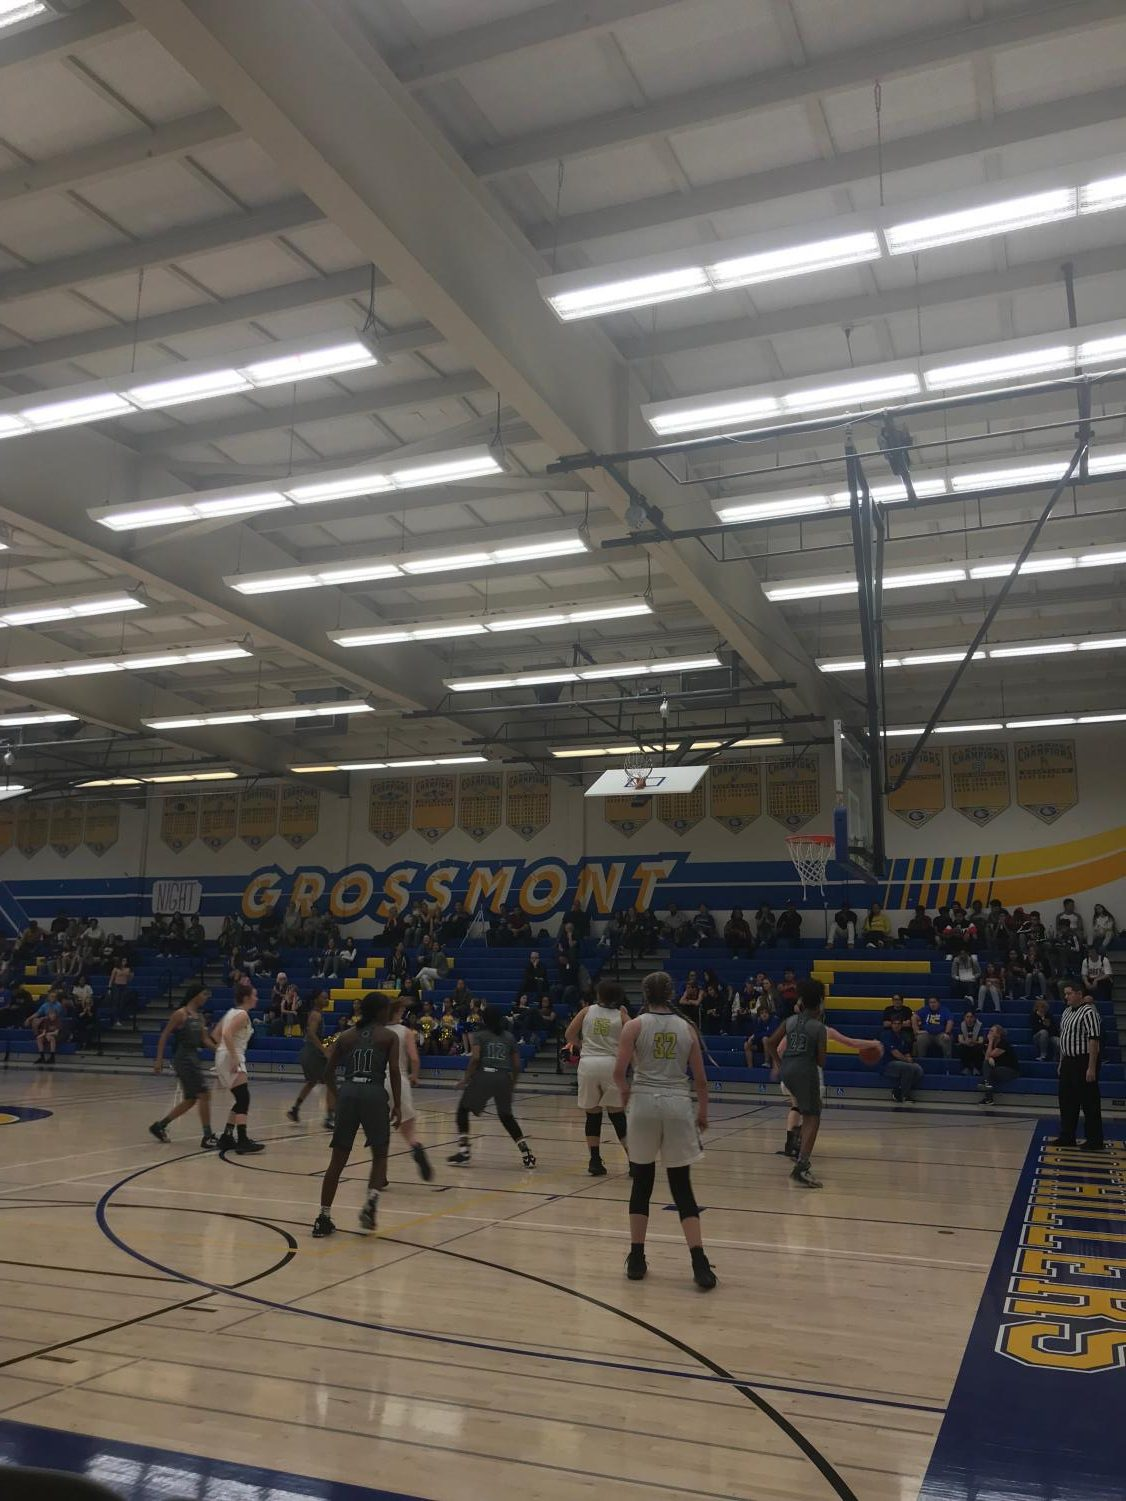 A picture of the game at Grossmont